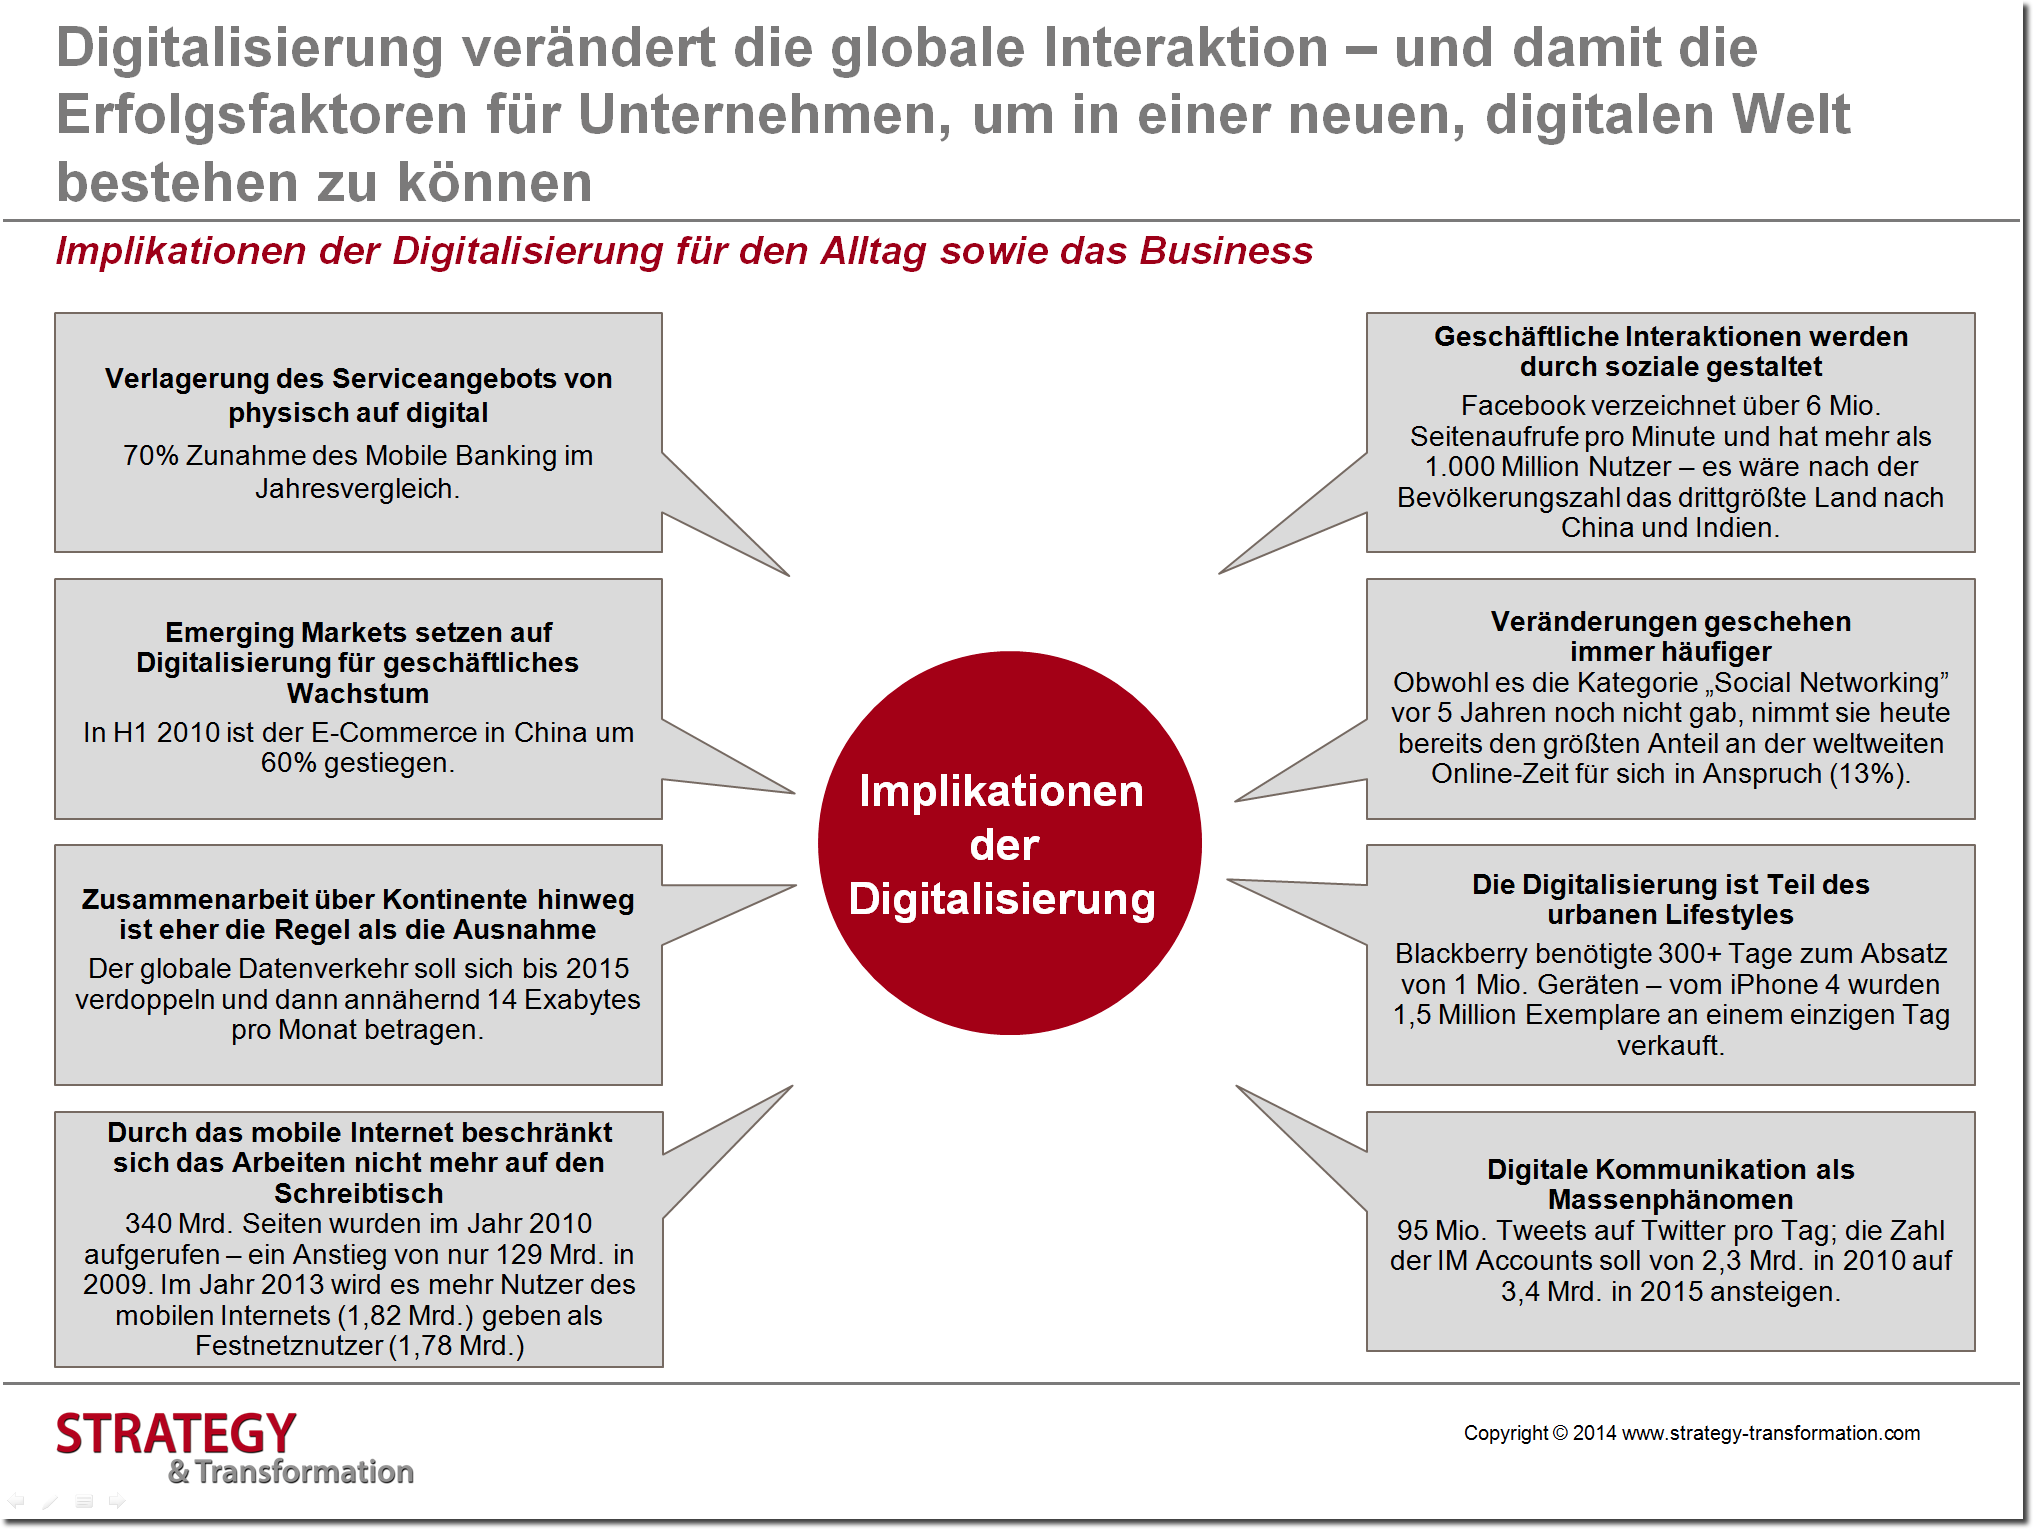 Digitale Transformation verstehen_Implikationen der Digitalisierung